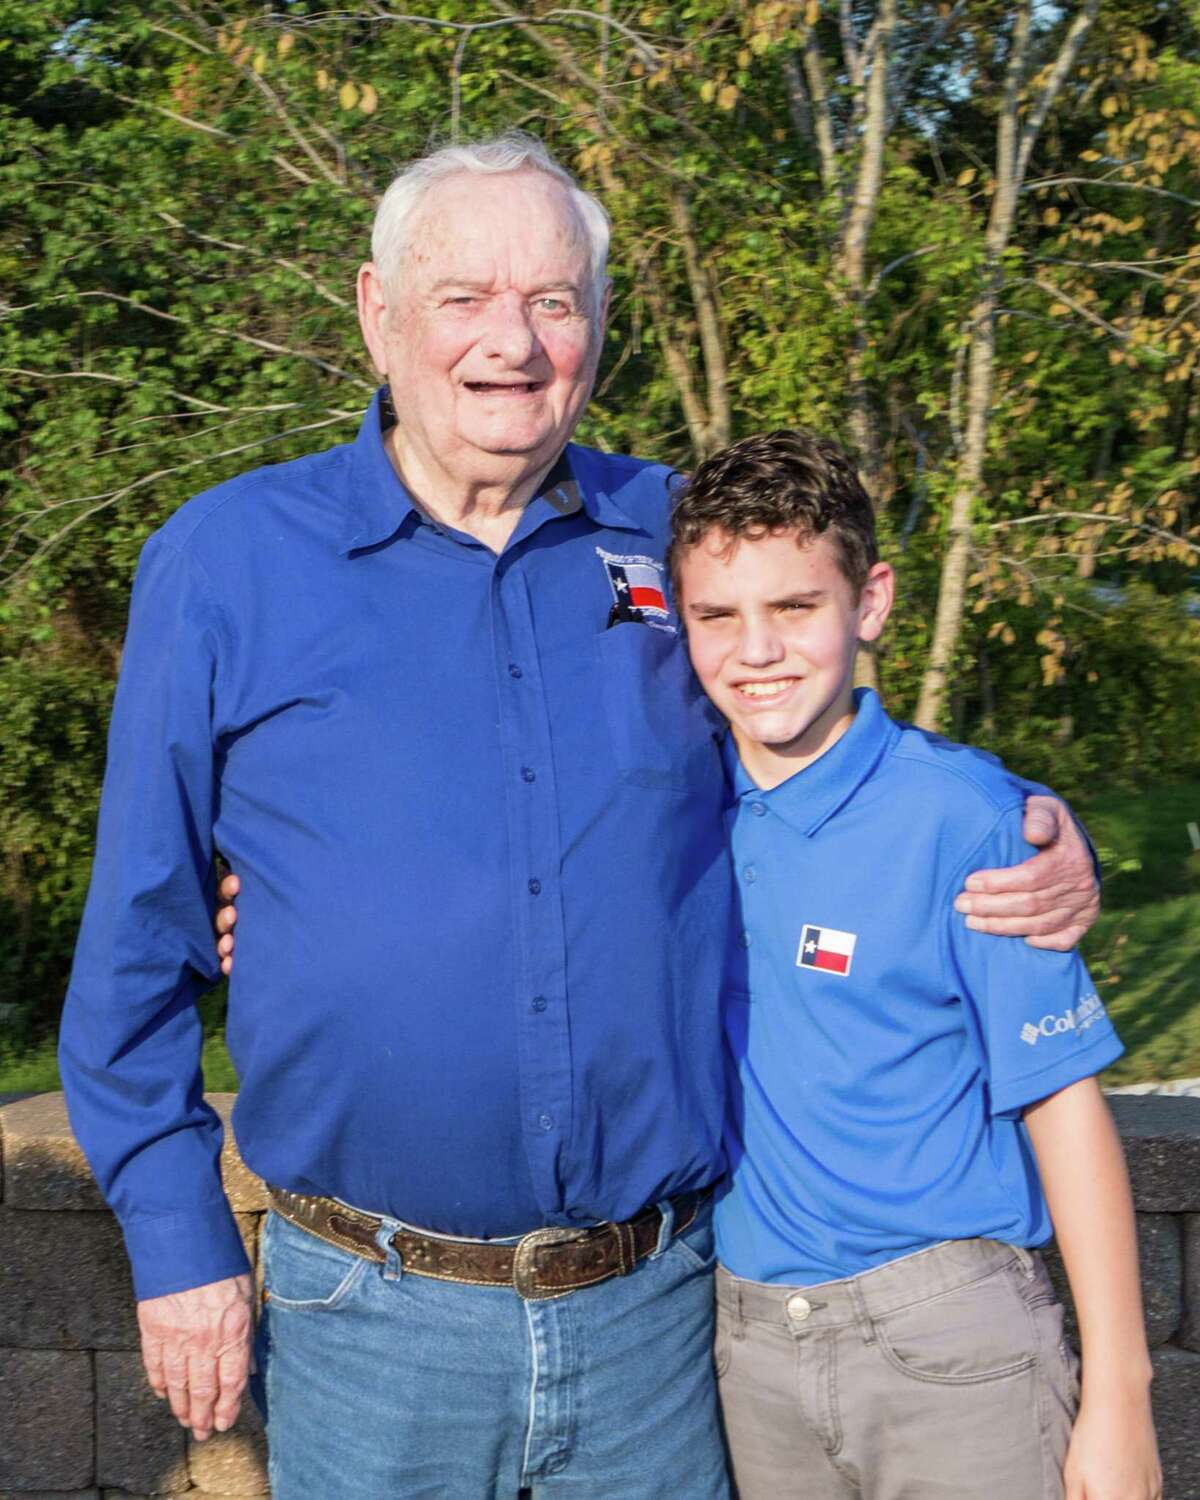 Jim Walker and his grandson Jaden Roles at the 2020 Flag Raising Ceremony at the Lone Star Monument & Historical Flag Park.